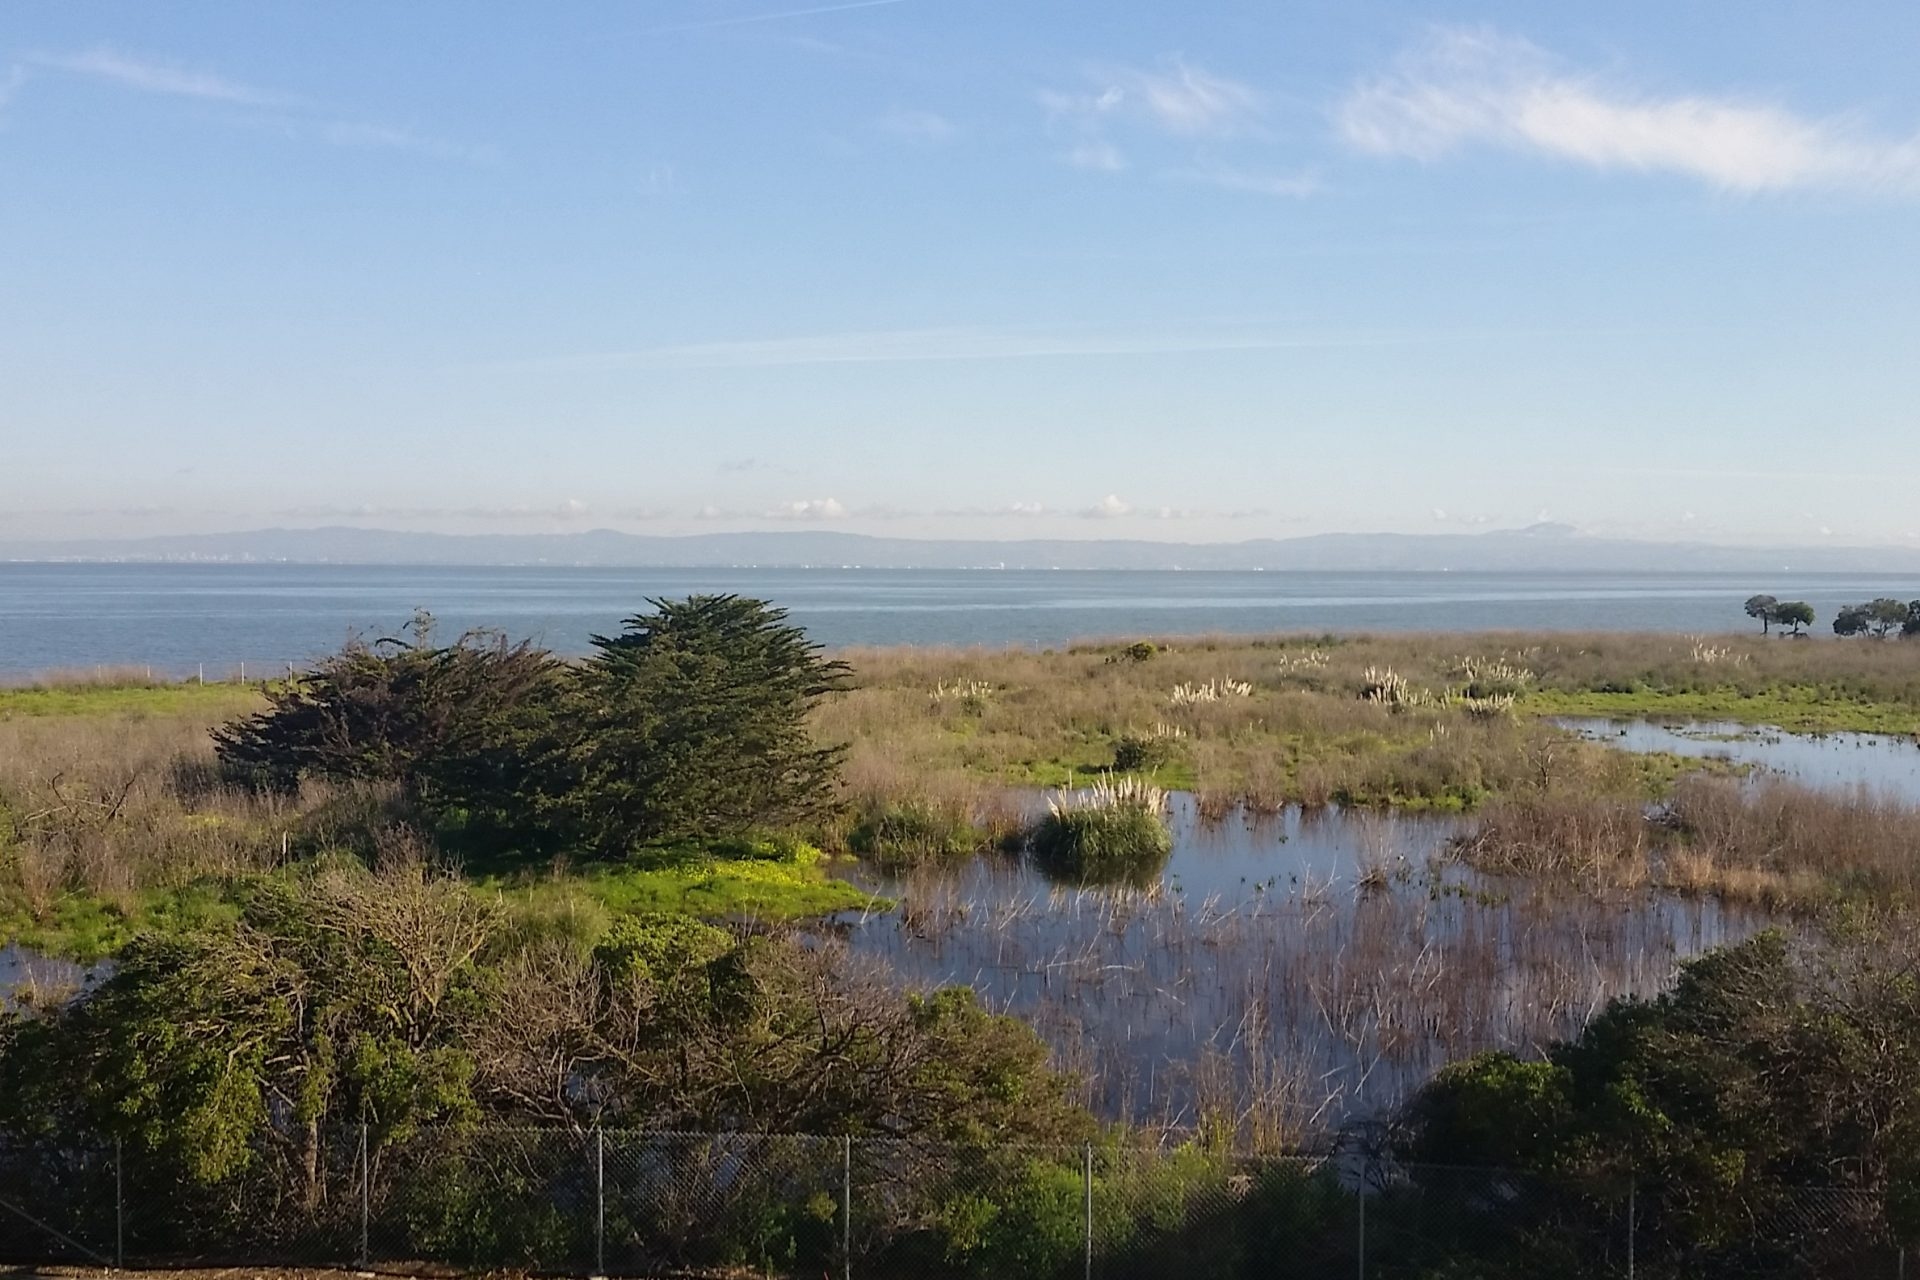 Speak up for Habitat Restoration & Access to the Bay in Burlingame